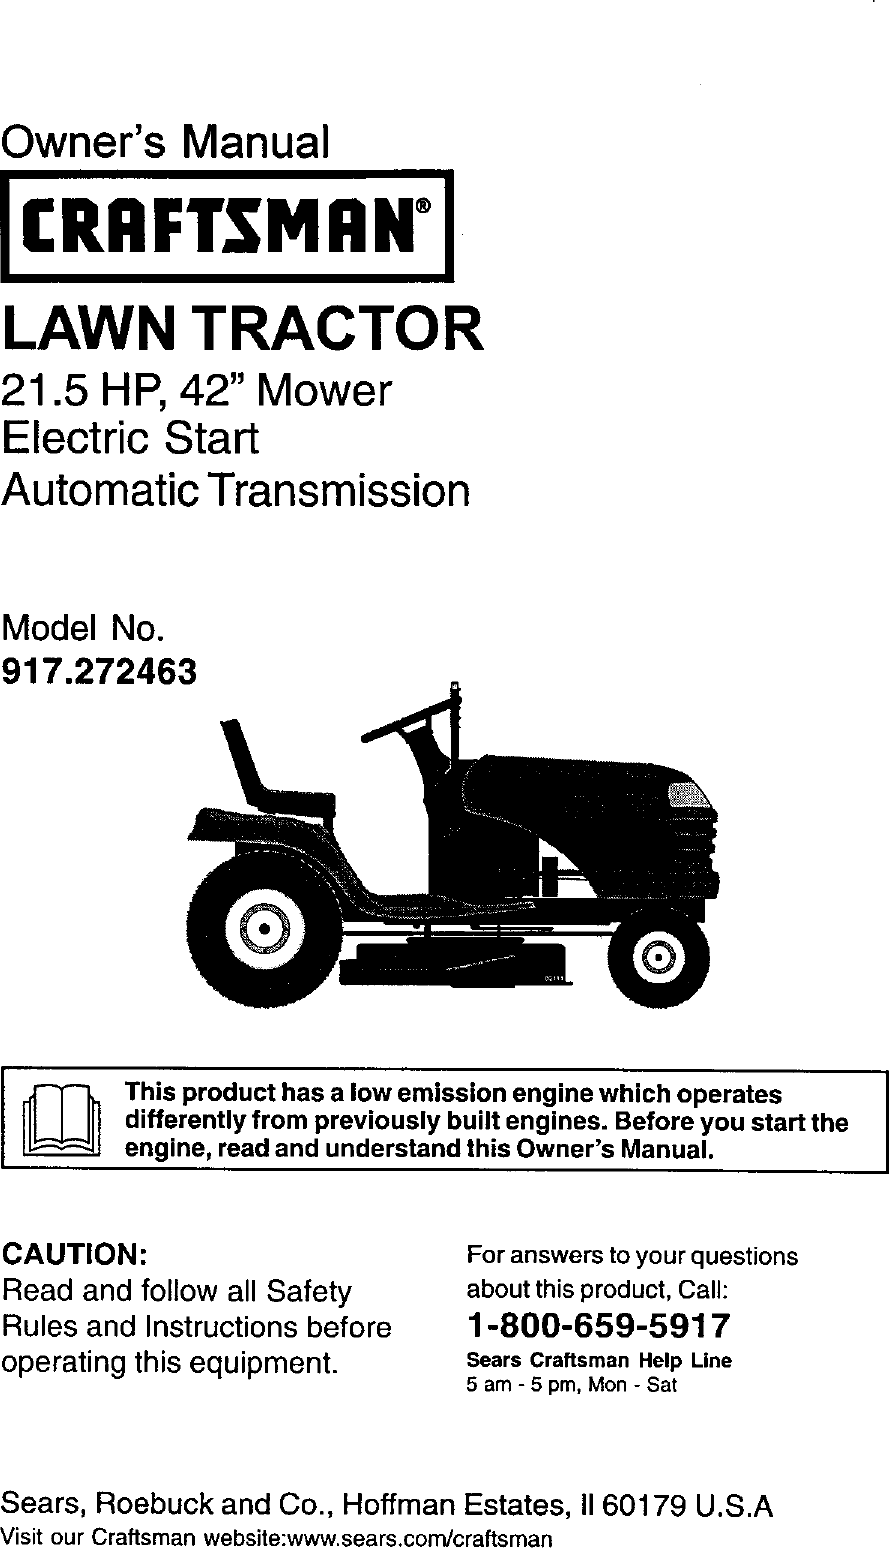 Craftsman 917272463 User Manual Lawn Tractor Manuals And